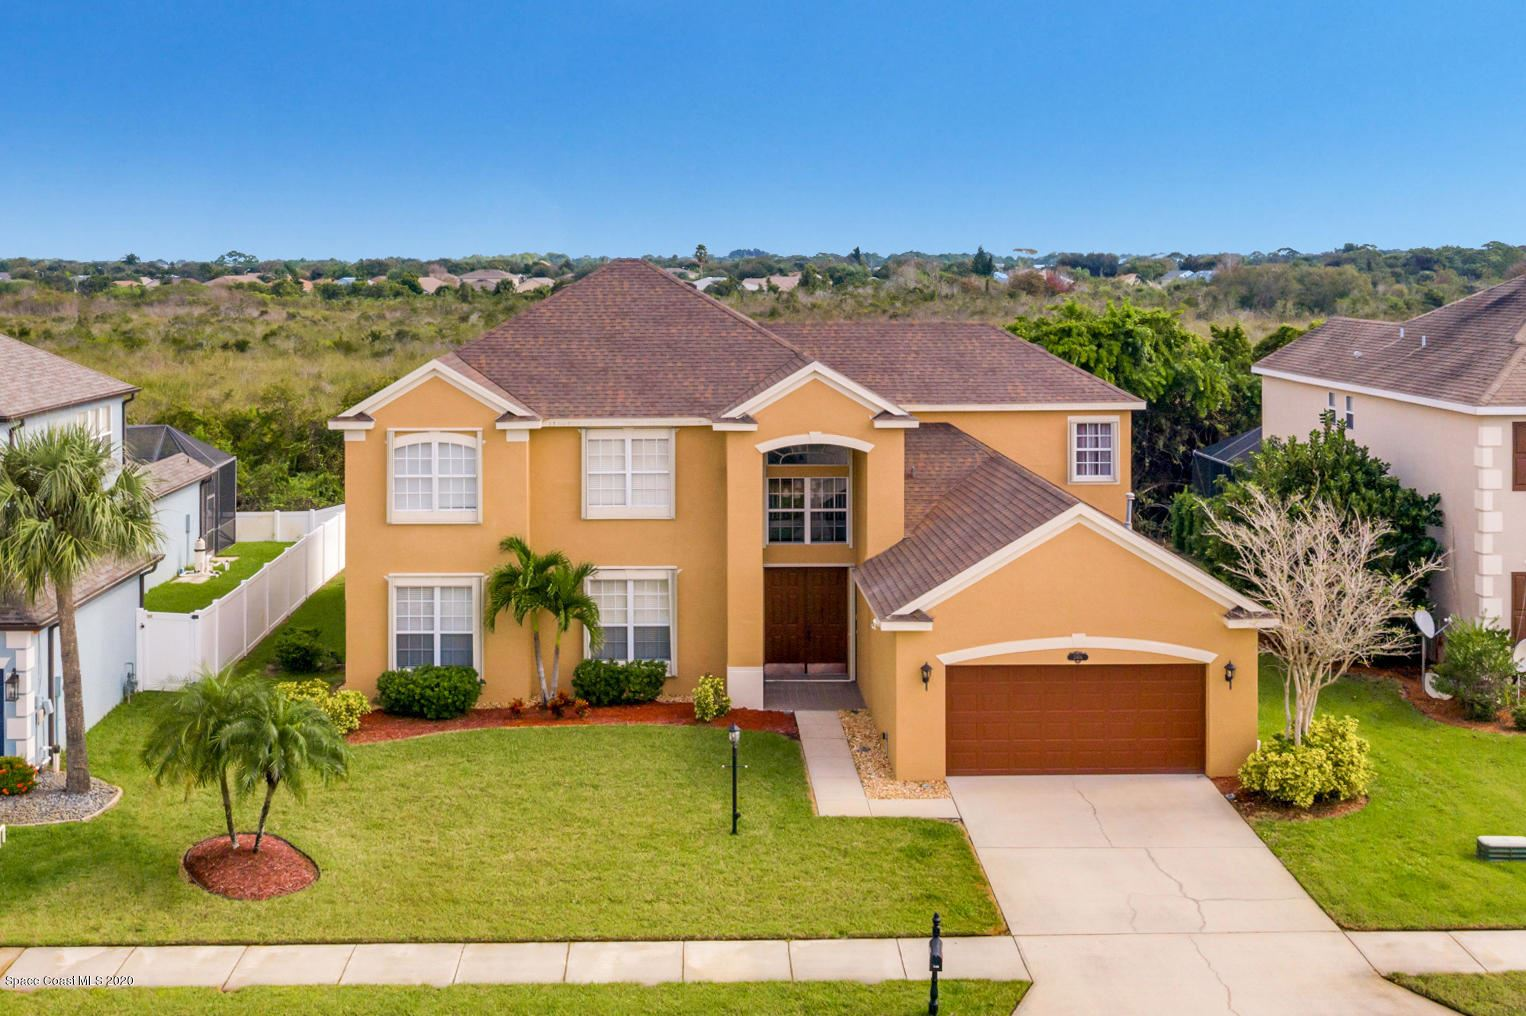 3406 Peninsula Circle, Melbourne, FL 32940 - #: 890698